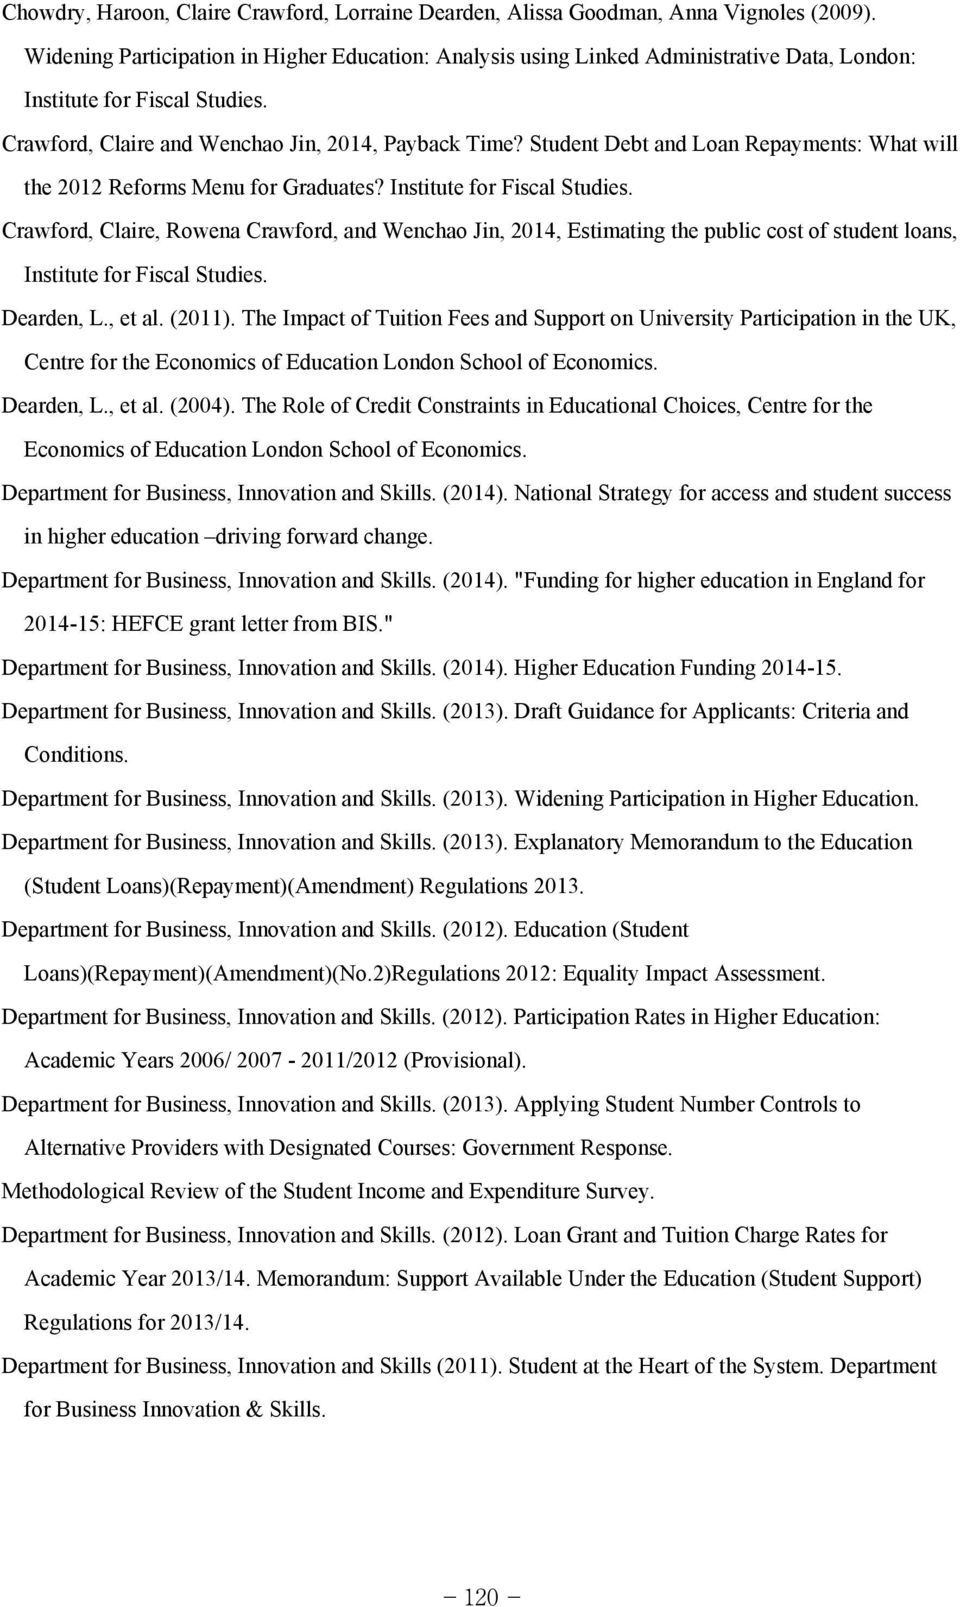 Student Debt and Loan Repayments: What will the 2012 Reforms Menu for Graduates? Institute for Fiscal Studies.